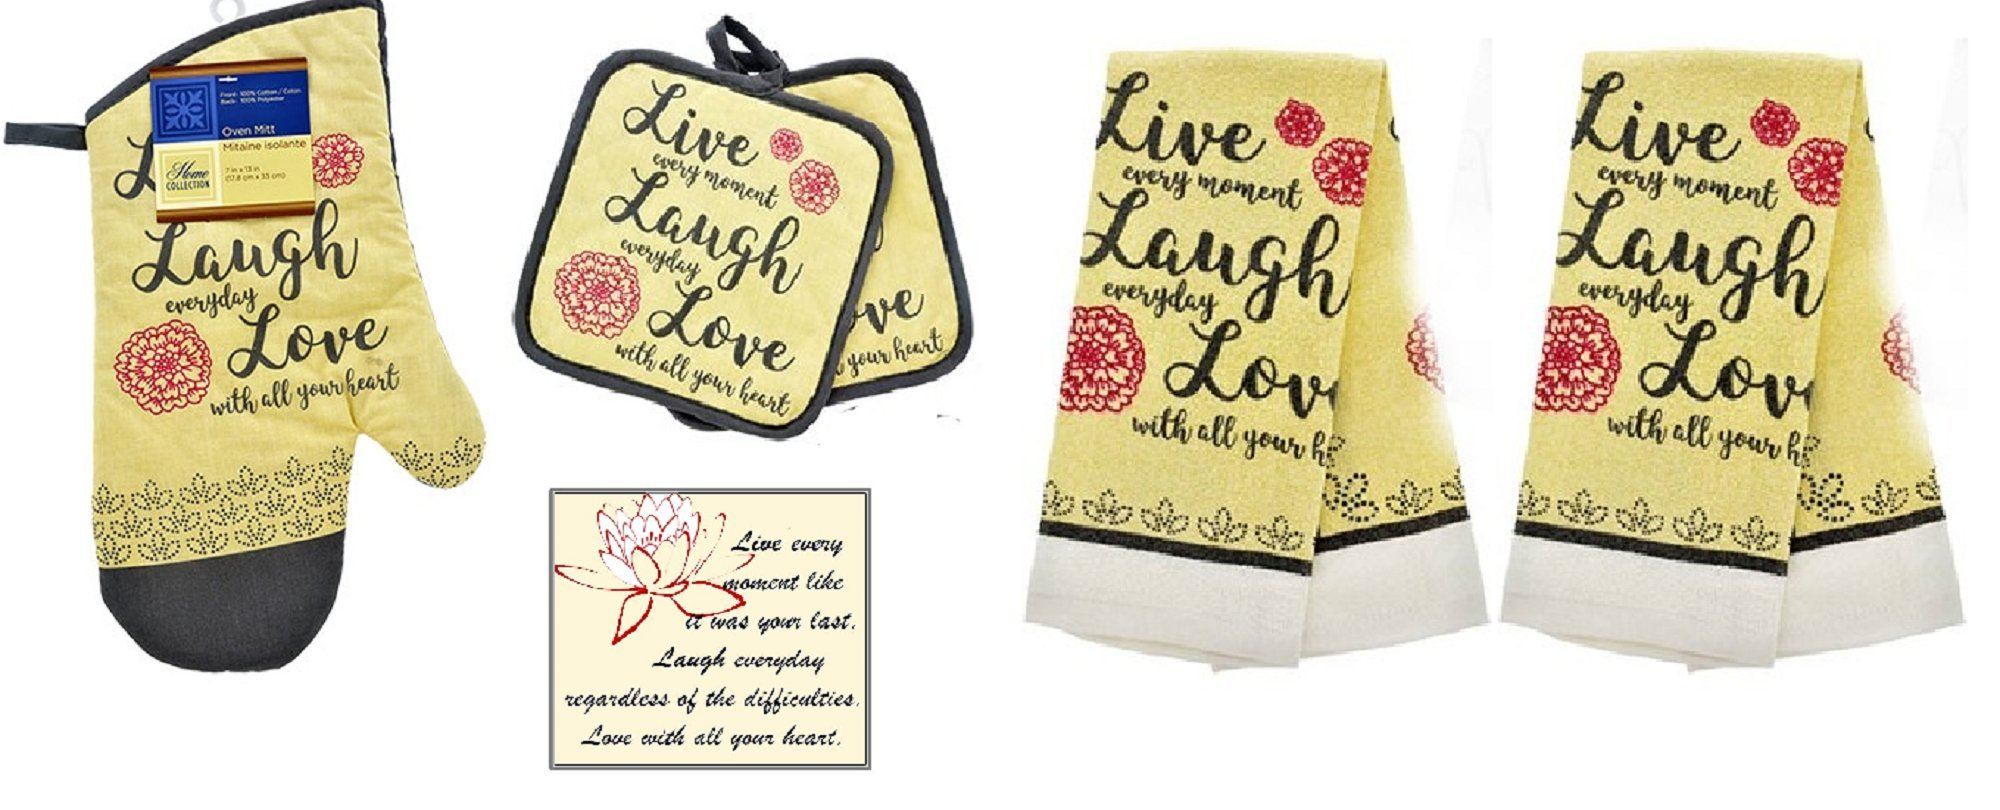 Live Laugh Love Decor Red, Gray and Cream Kitchen Towel 6 Piece Set - 2 Towels, 2 Pot Holders 1 Oven Mitt and Bonus Magnet